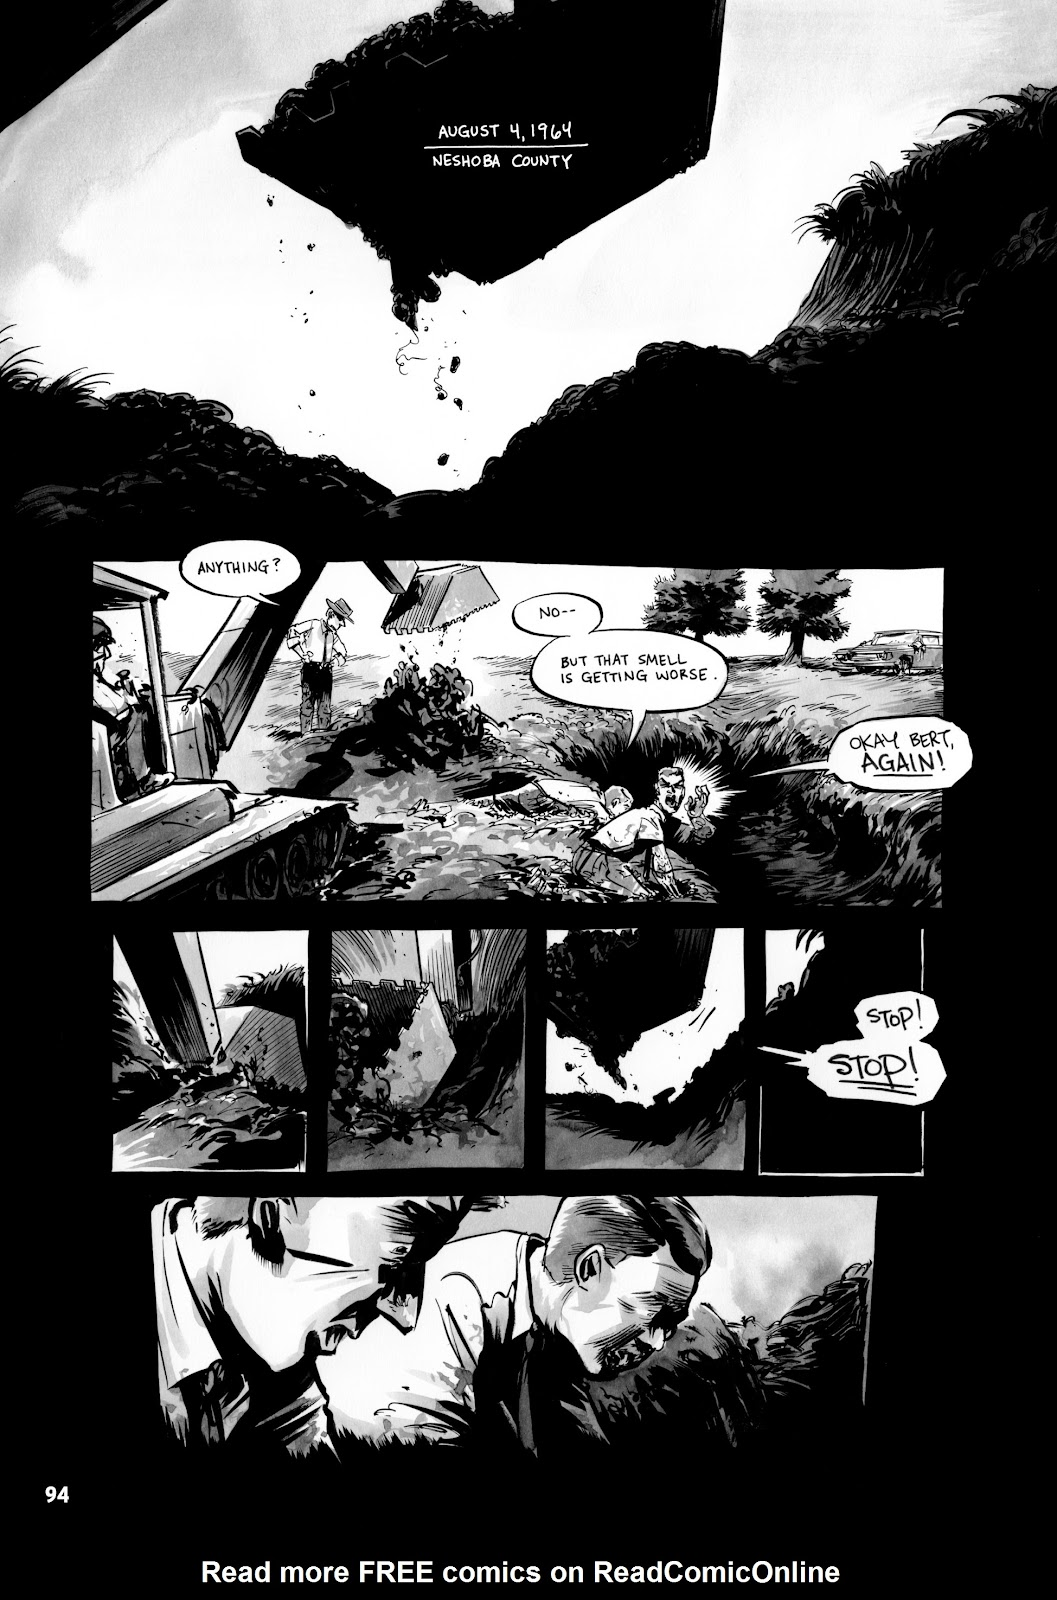 March 3 Page 91